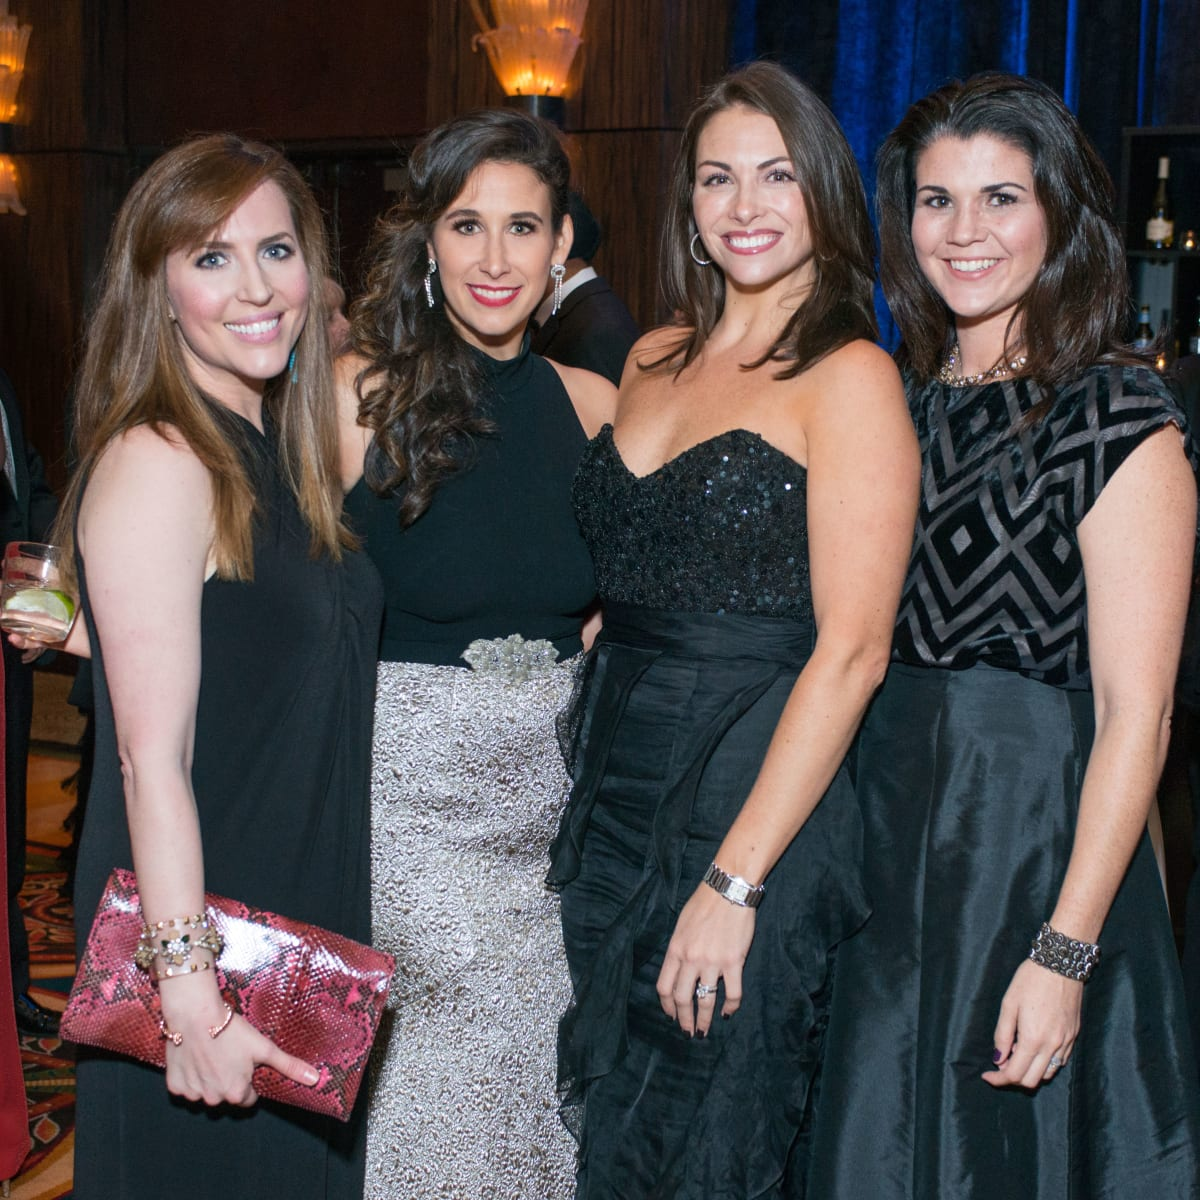 News, Shelby, UNICEF gala, Nov. 2015,  Mary Patton, Rachel Solar, Beth Zdeblick, Candice Mullervy